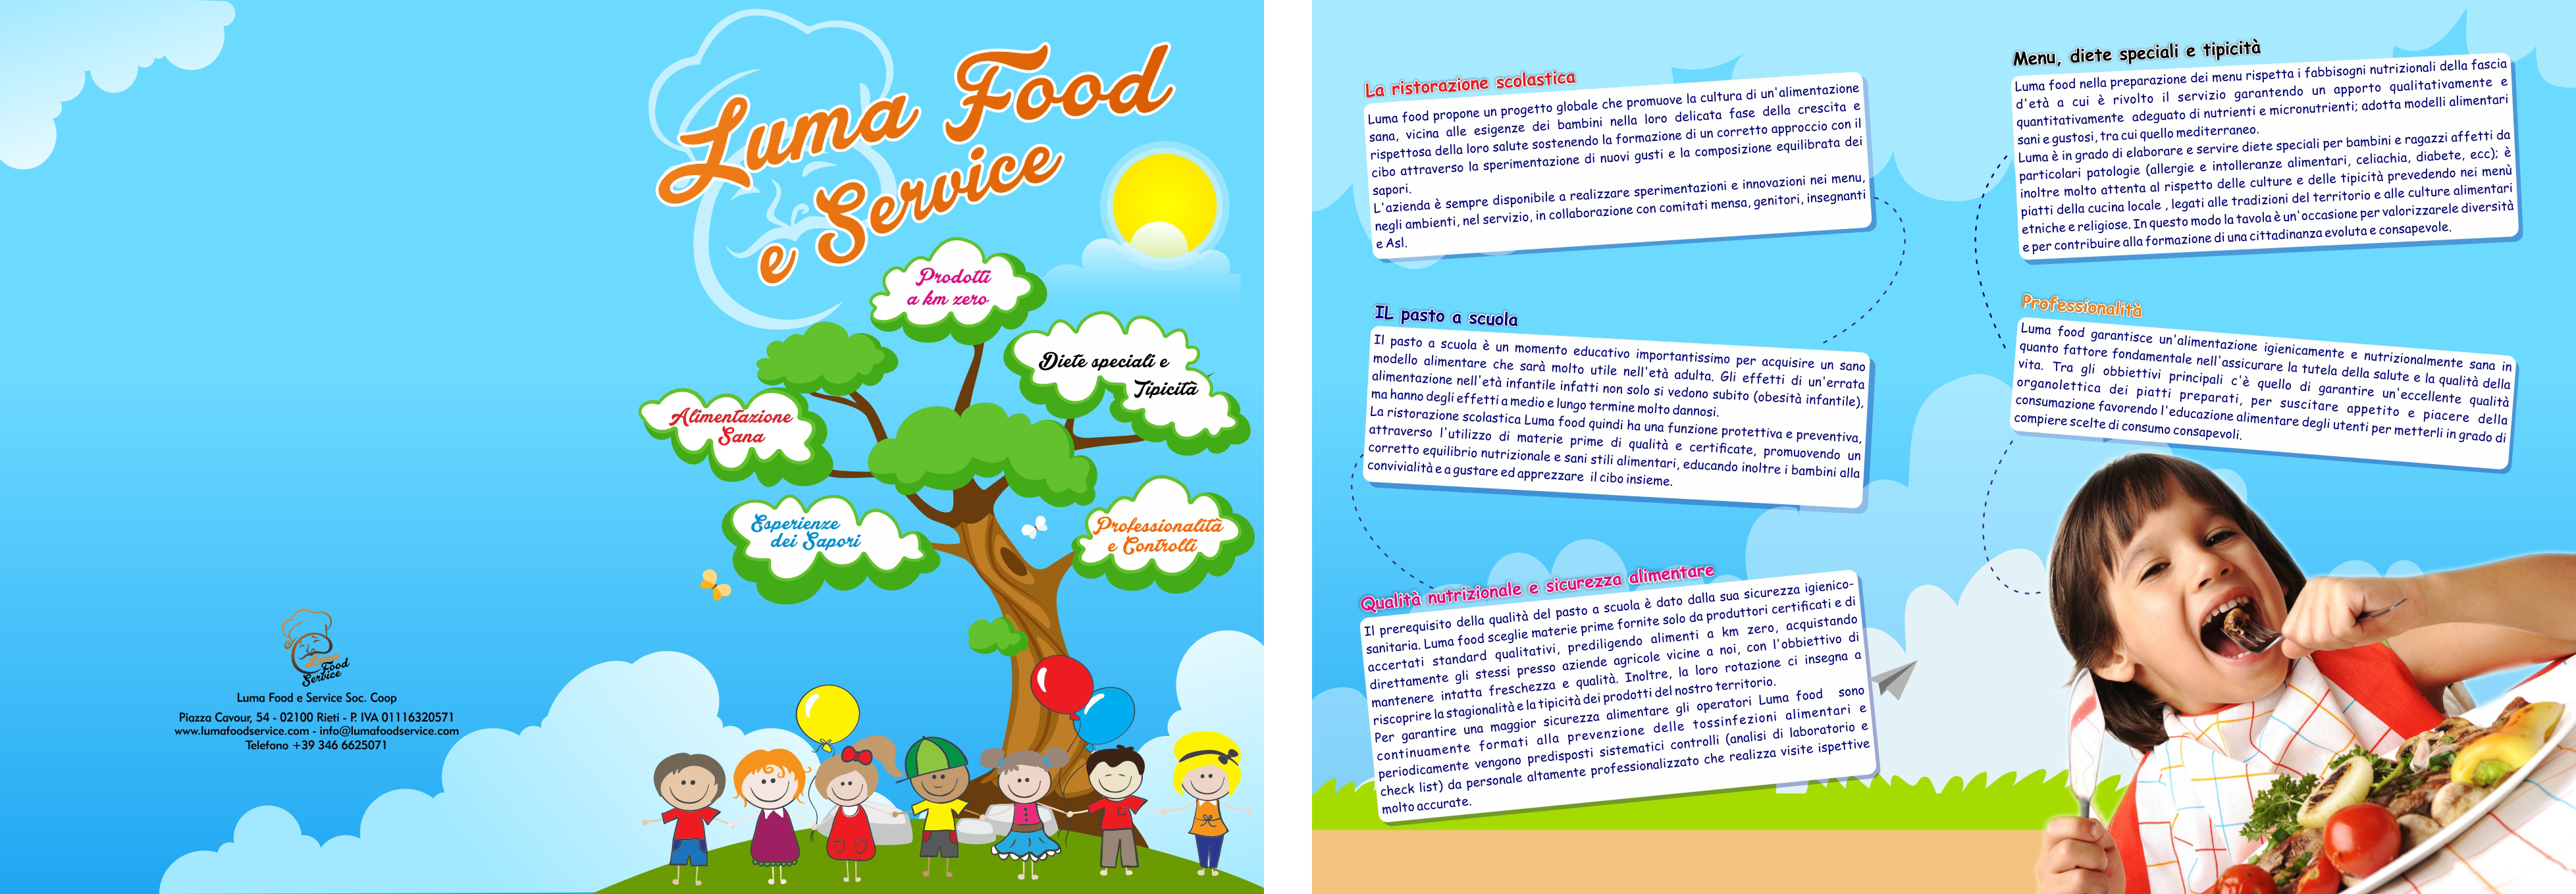 brochure-luma-food-e-service